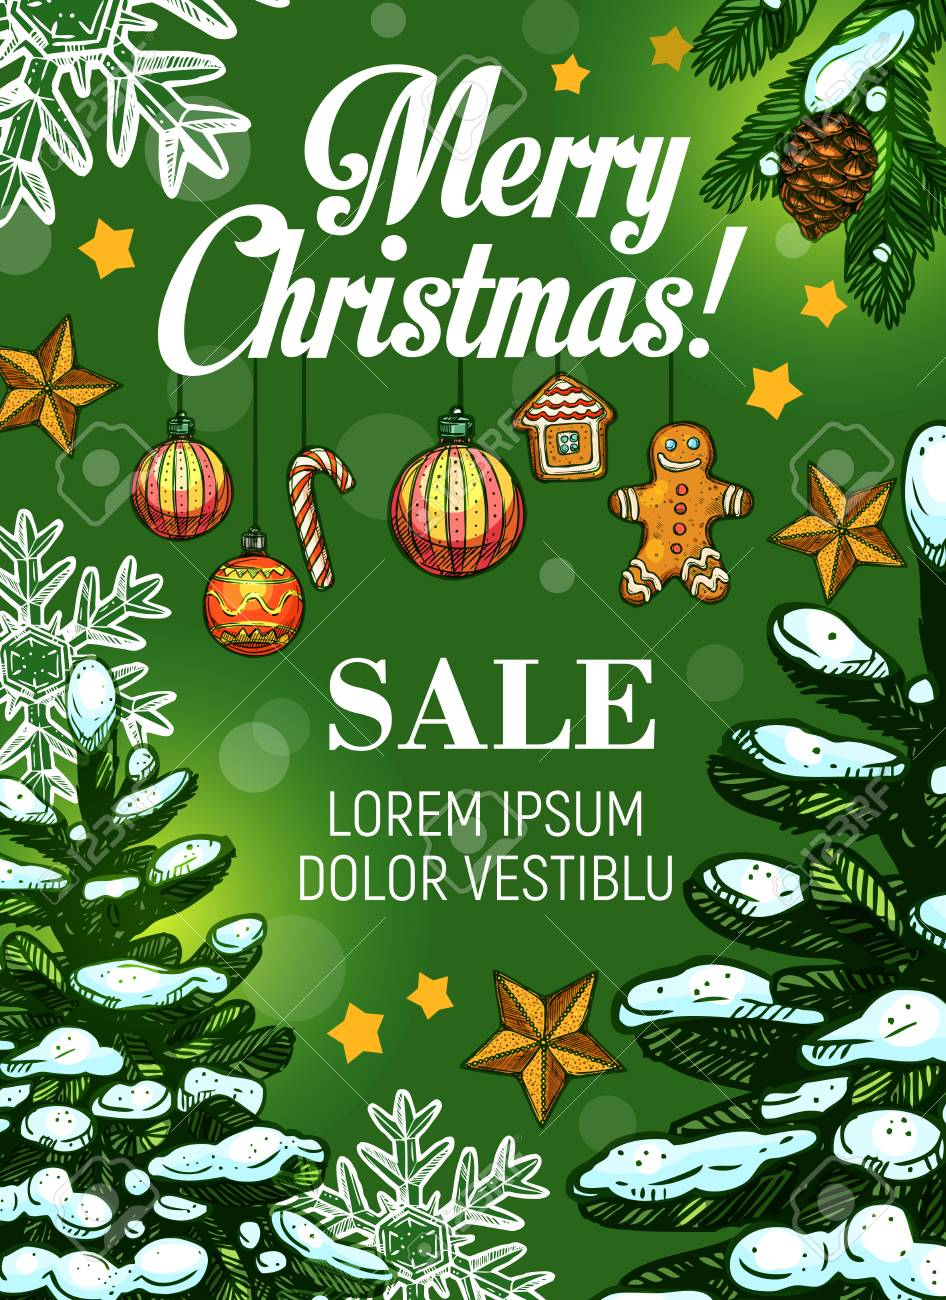 Christmas sale and New Year discount offer banner - 88317647